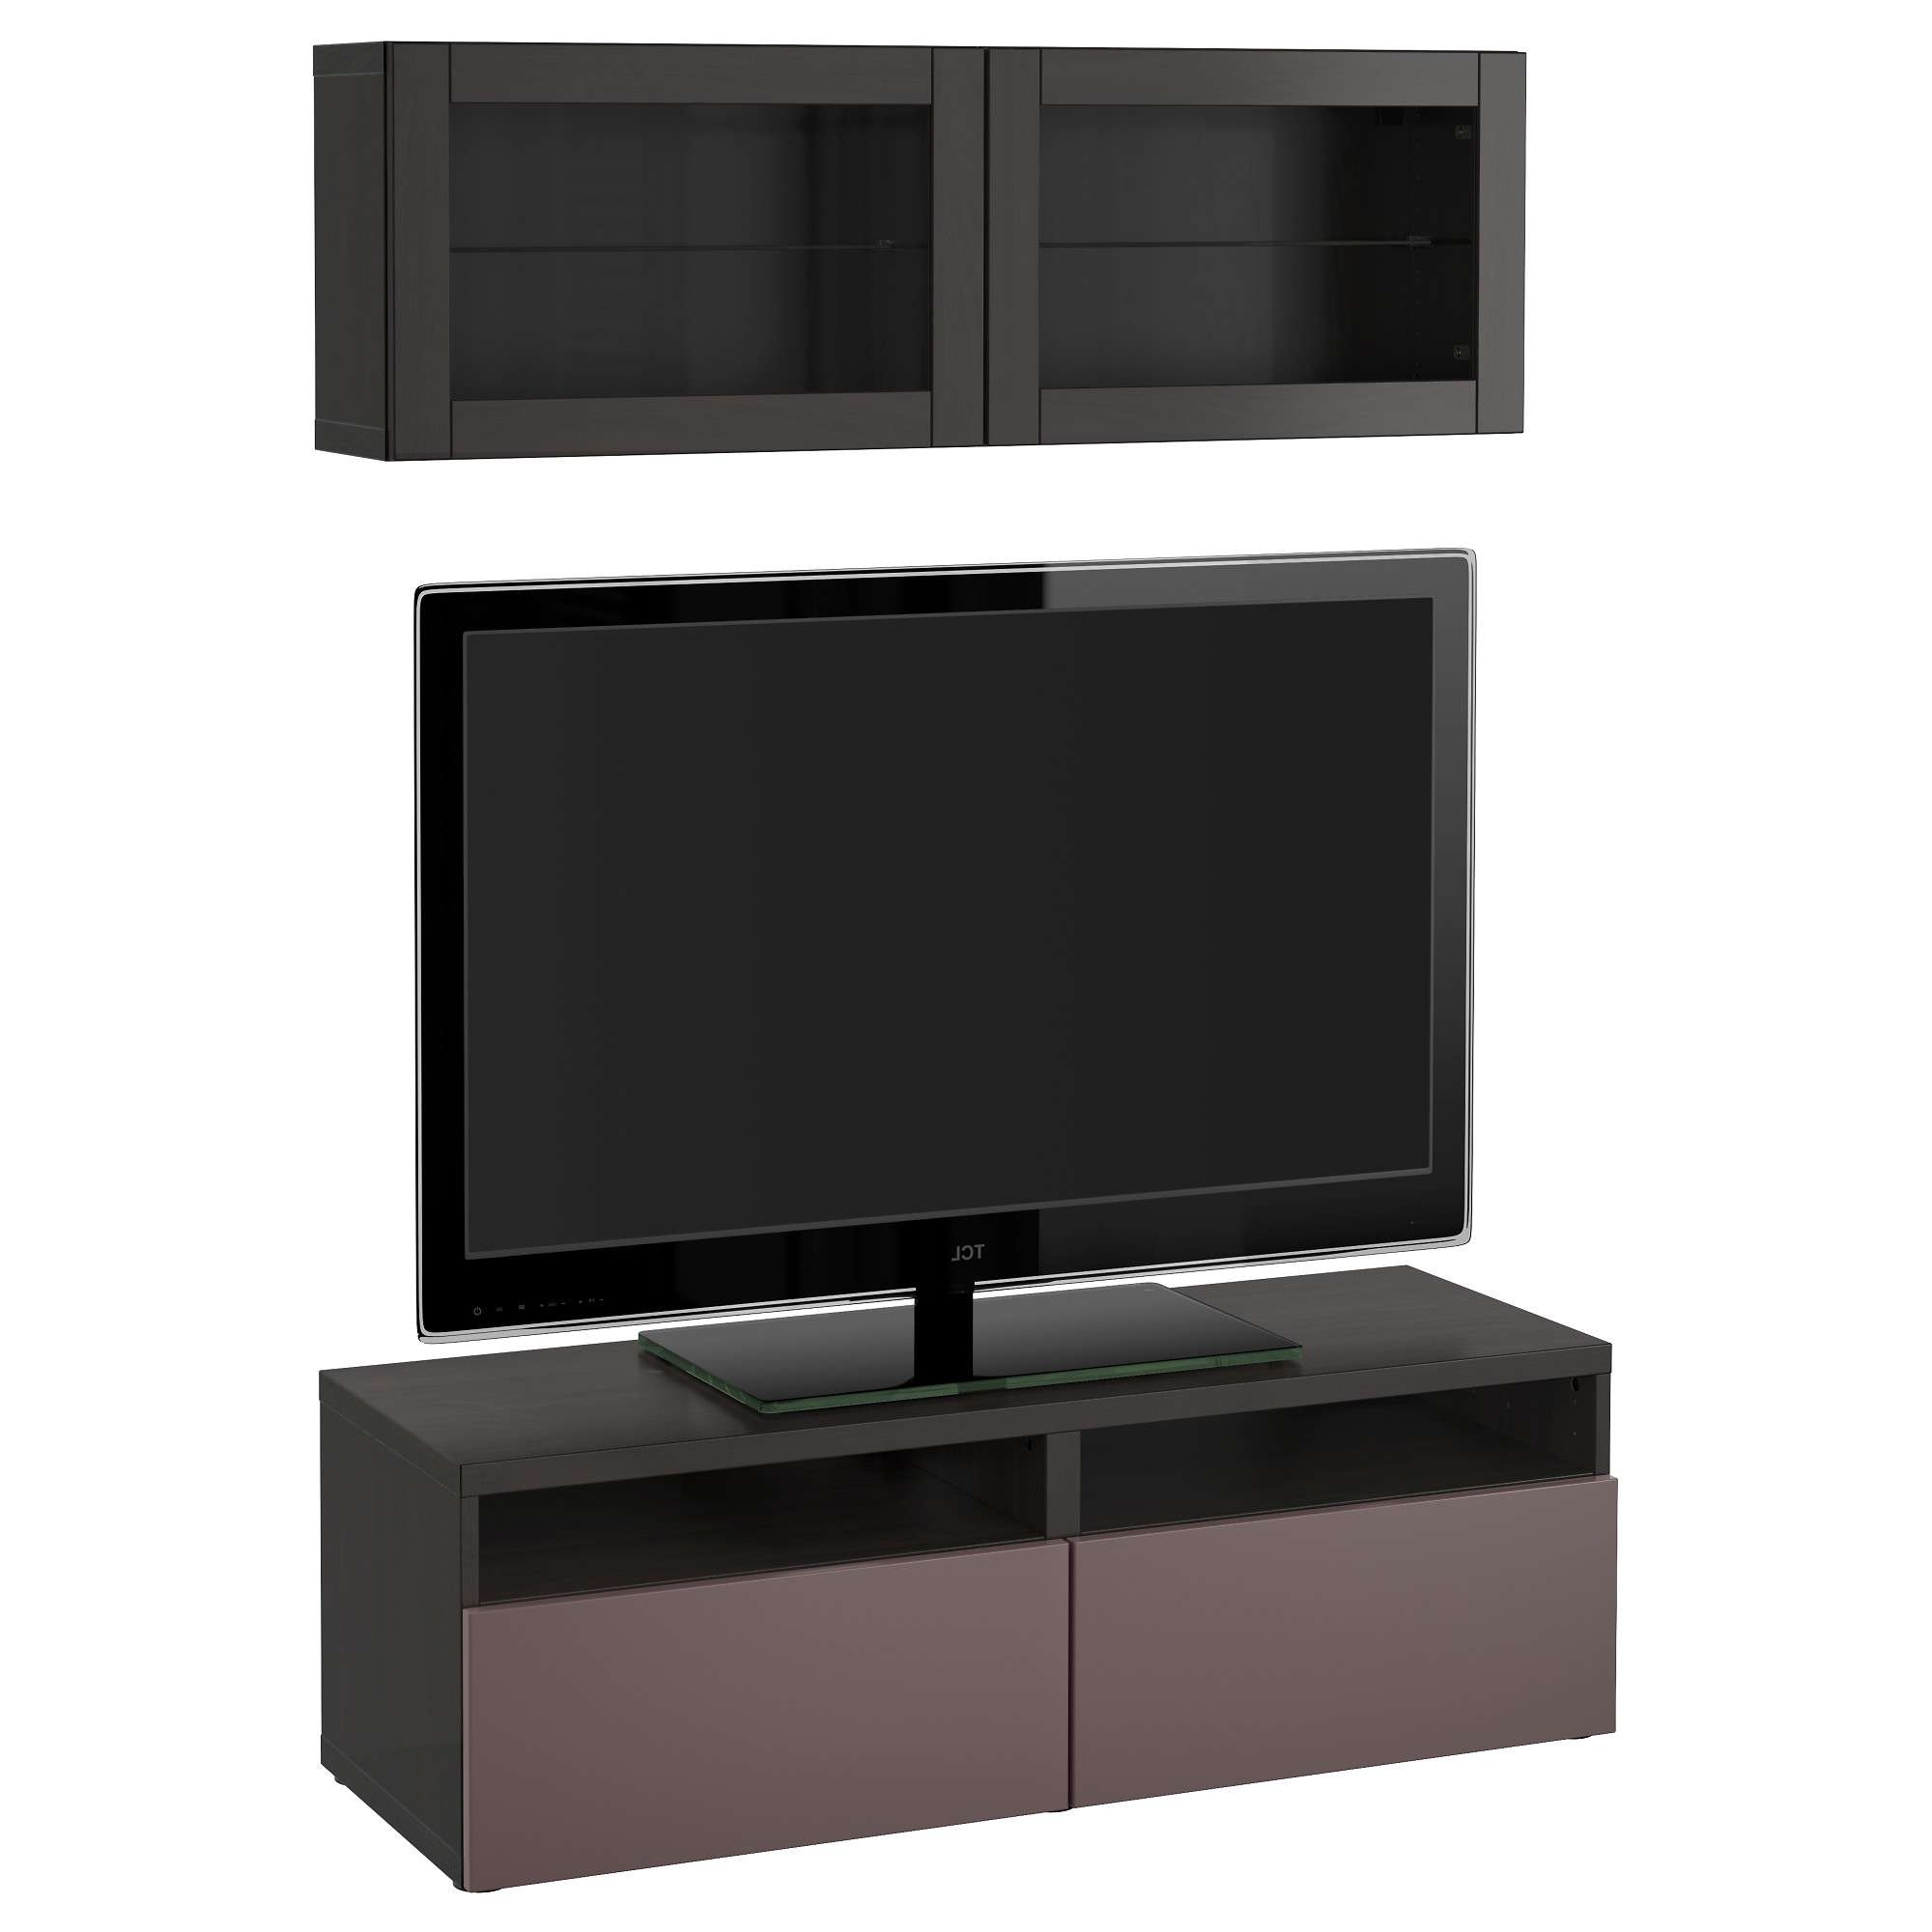 Tv Stands & Tv Units | Ikea In Glass Tv Cabinets With Doors (View 18 of 20)